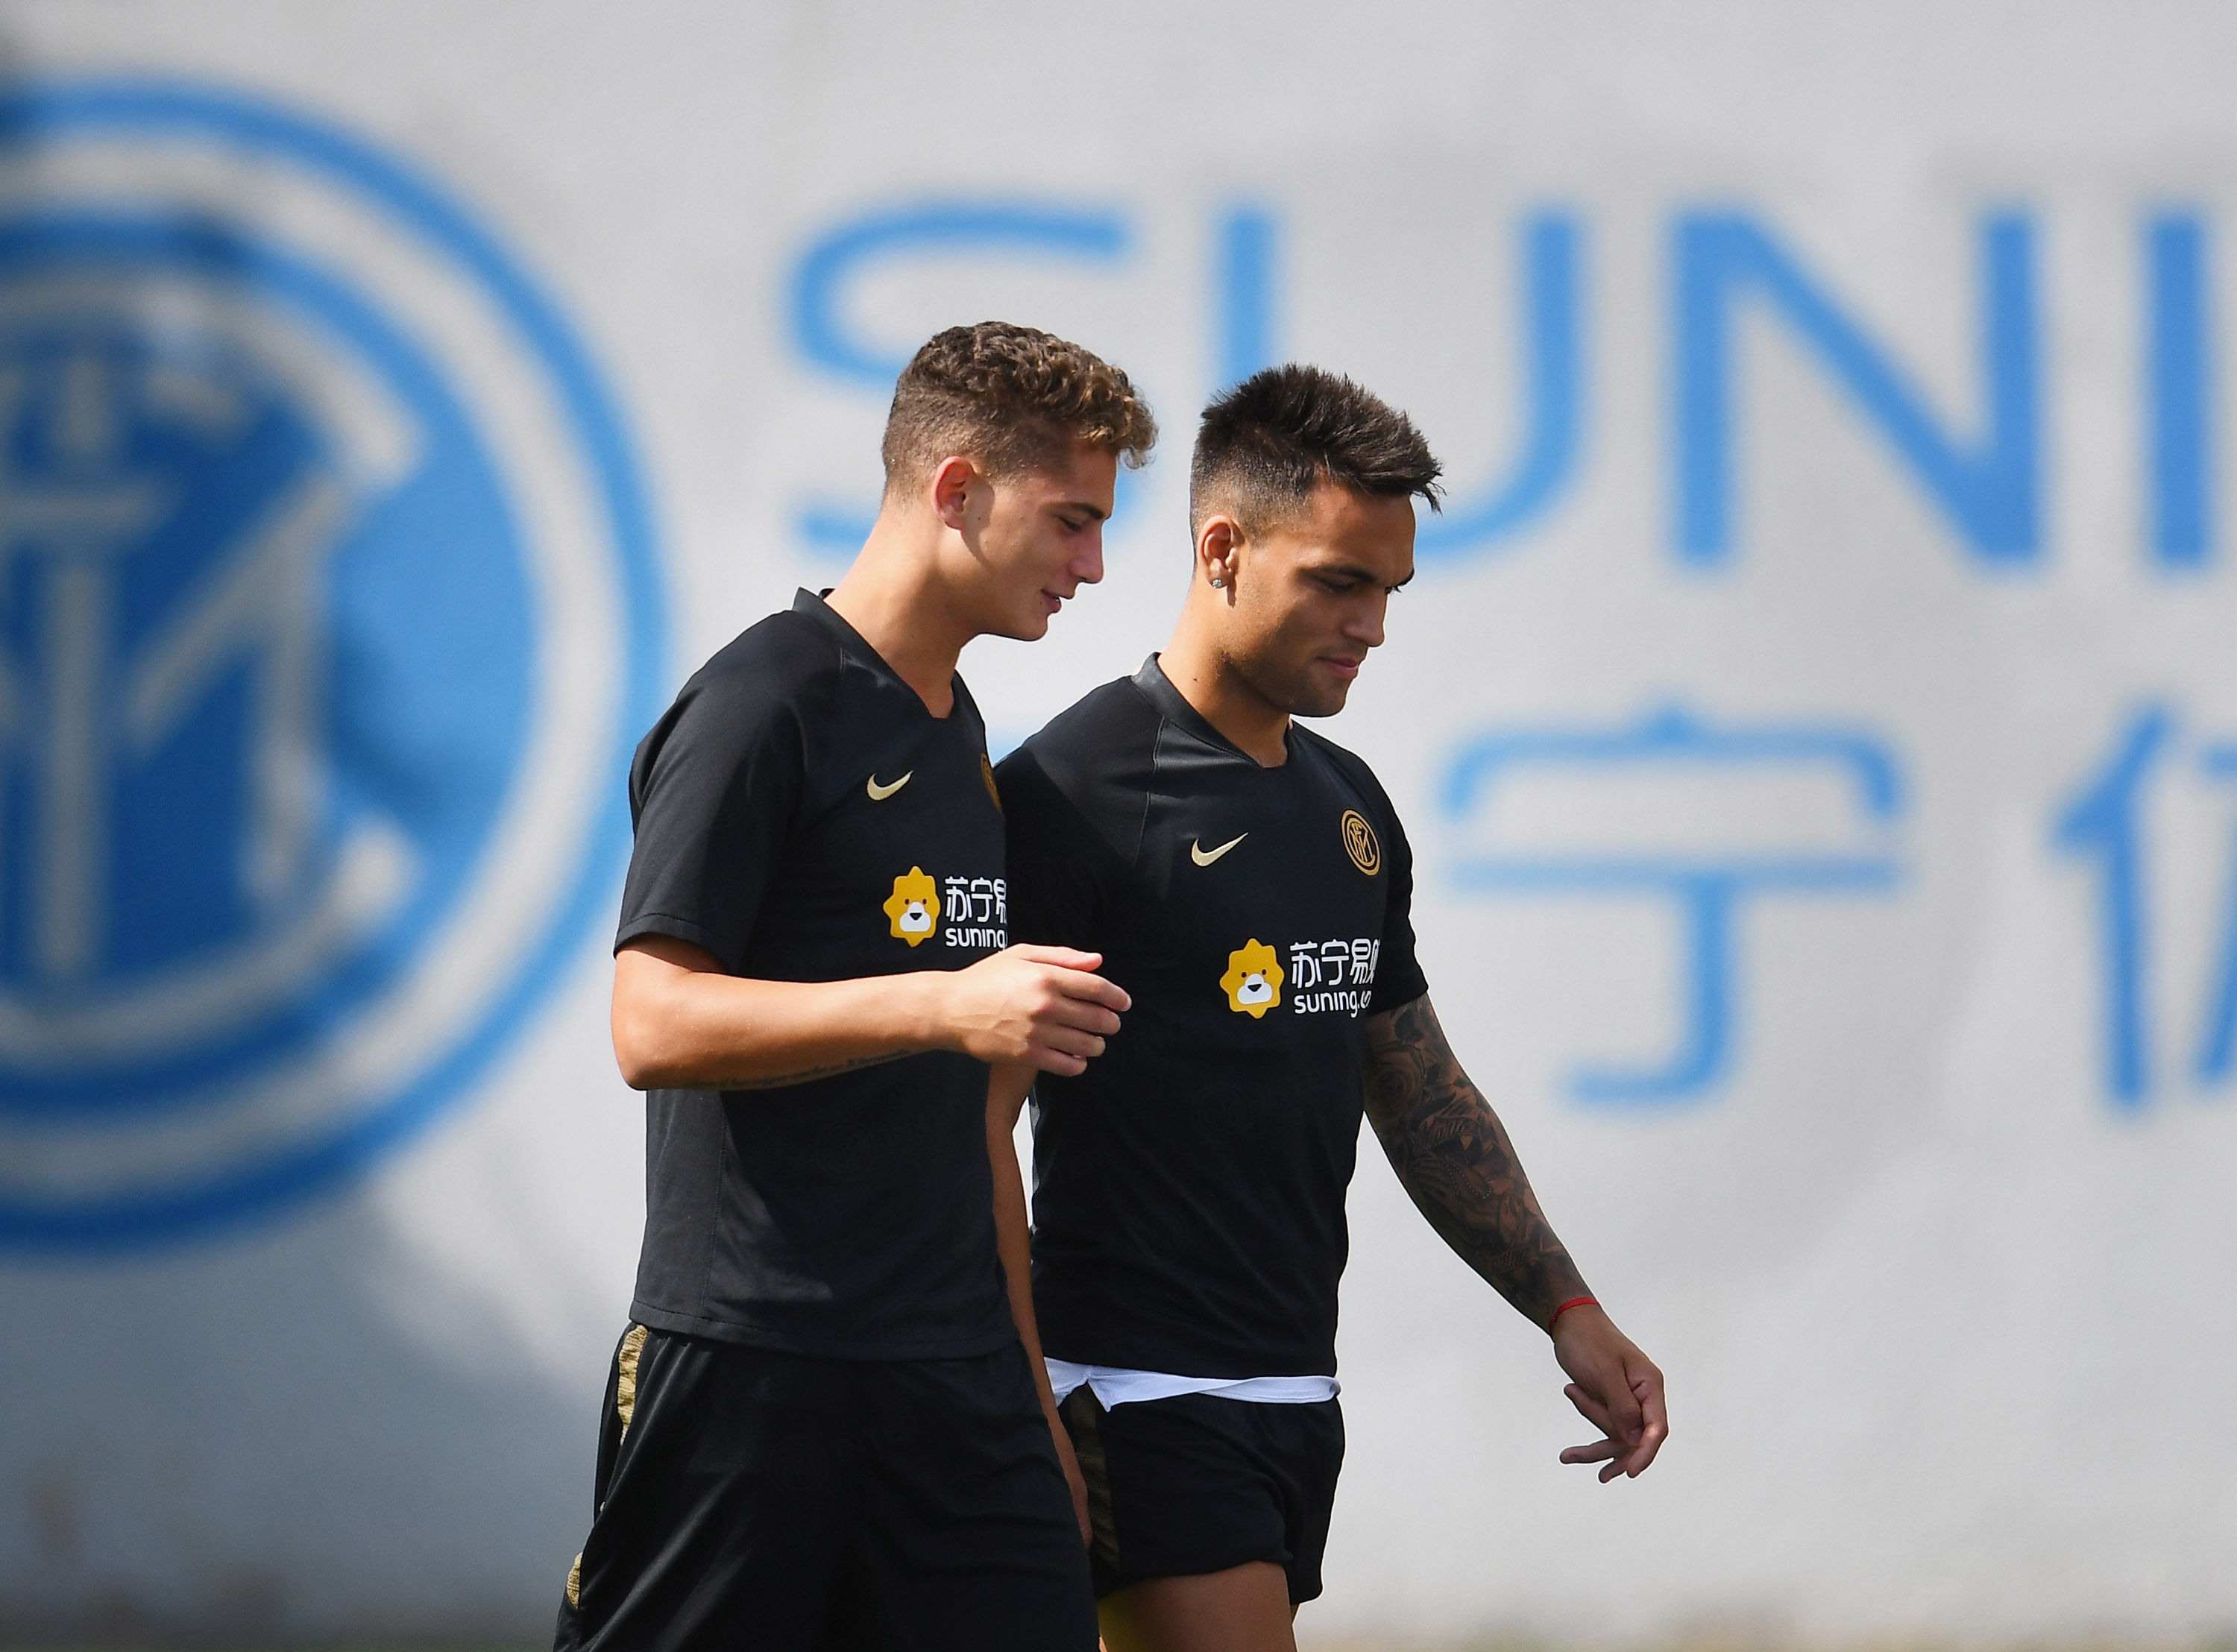 The team hard at work at the Suning Training Centre